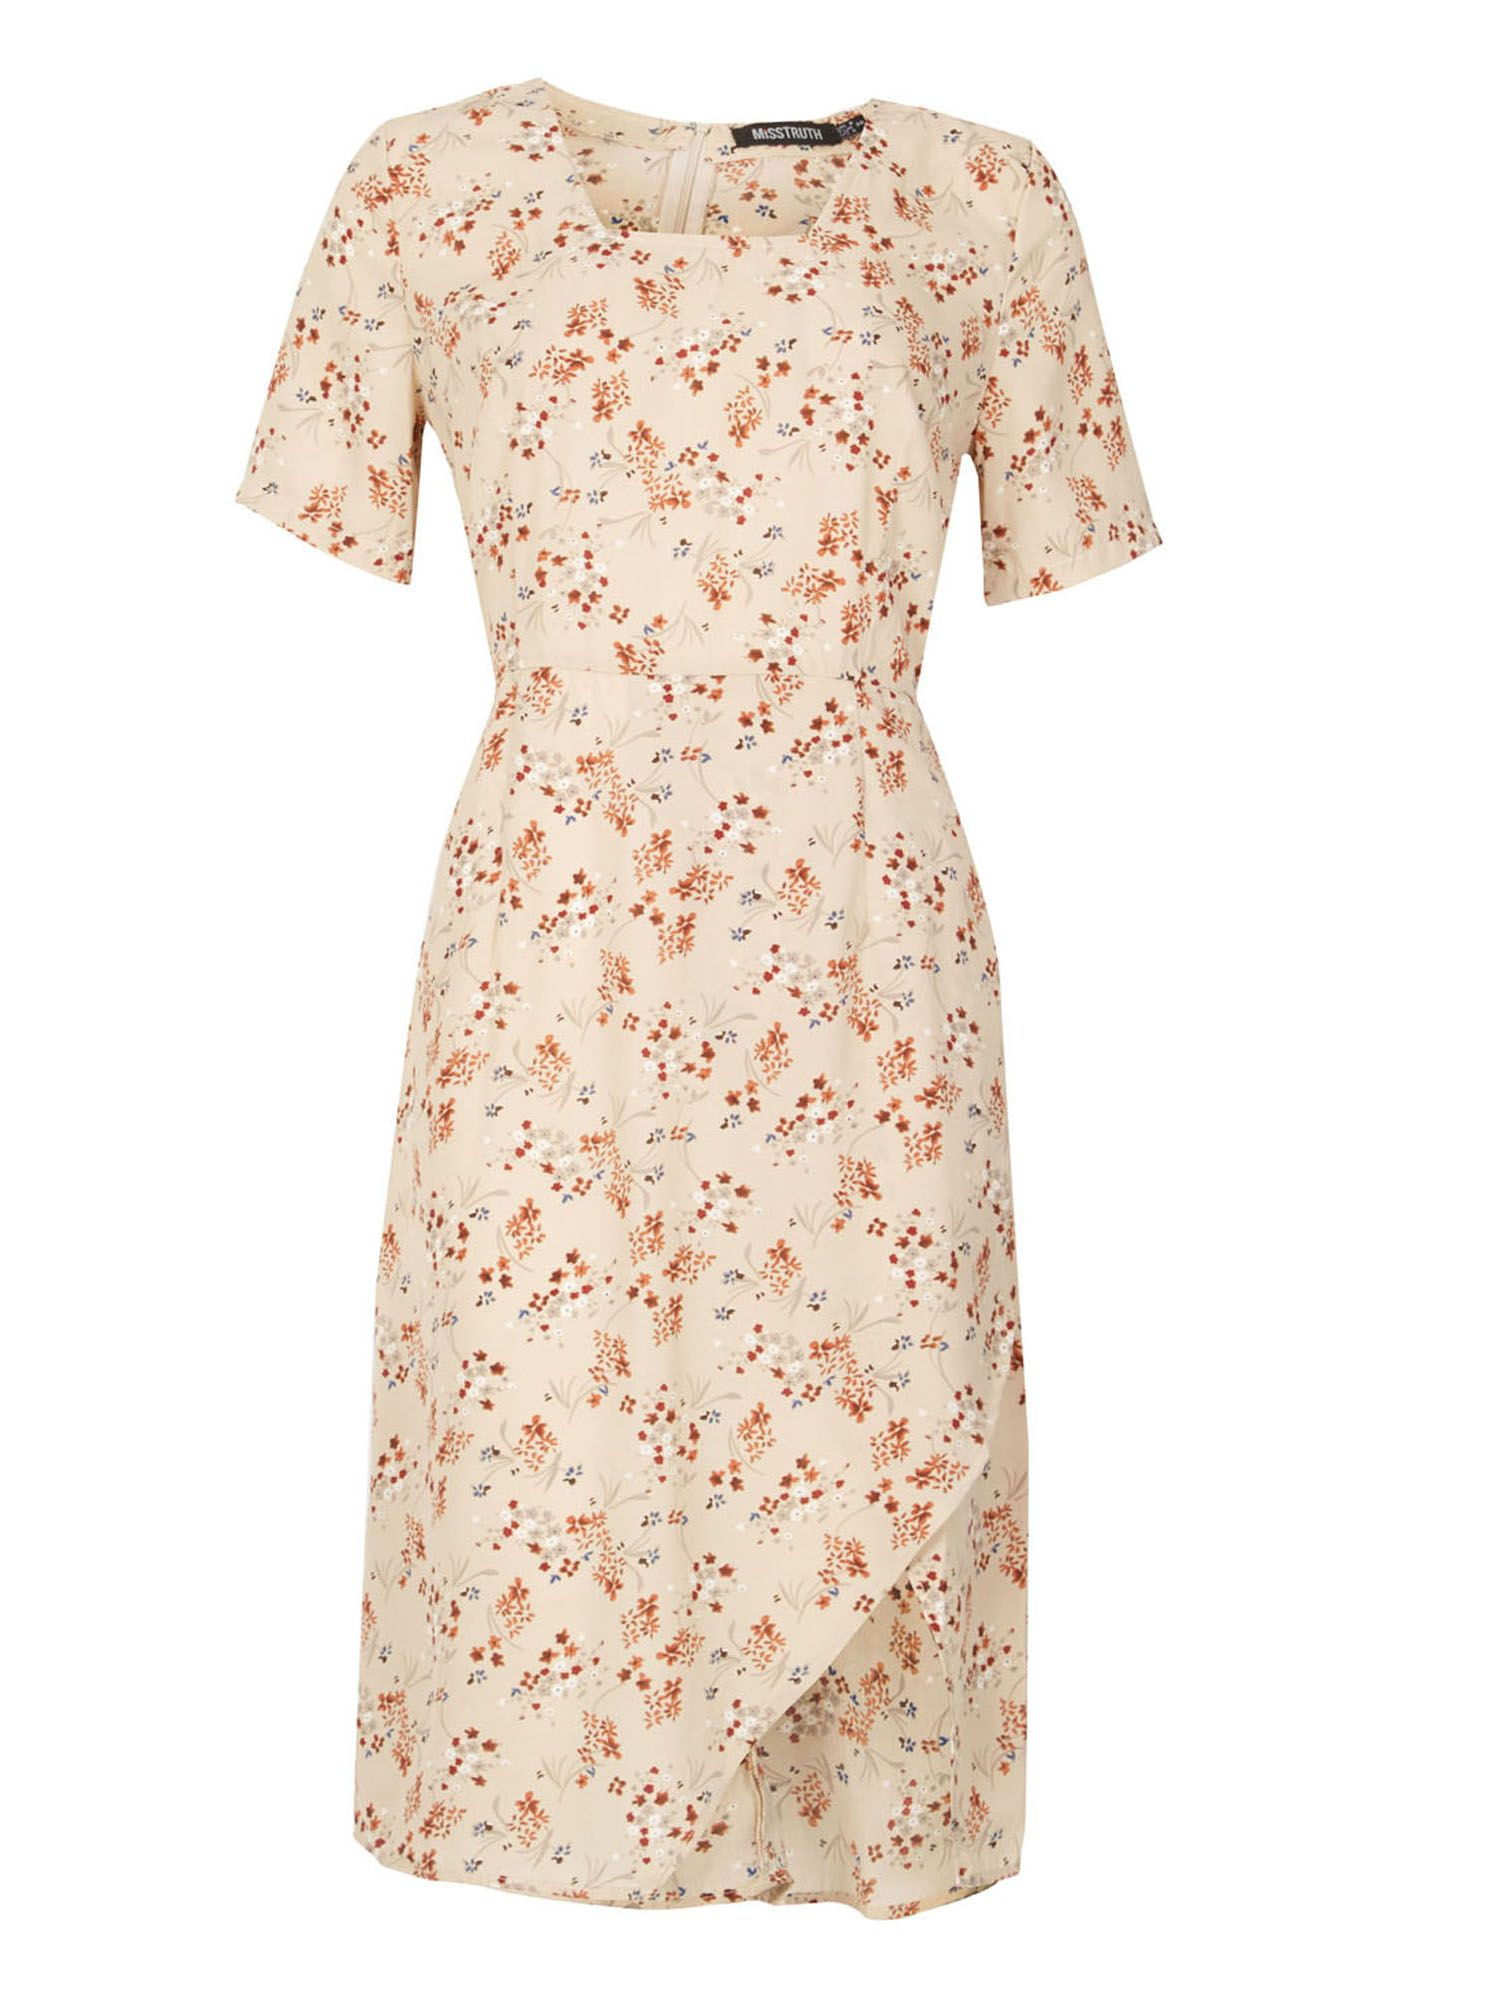 MISSTRUTH Floral Print Asymmetric Shift Dress, Multi-Coloured